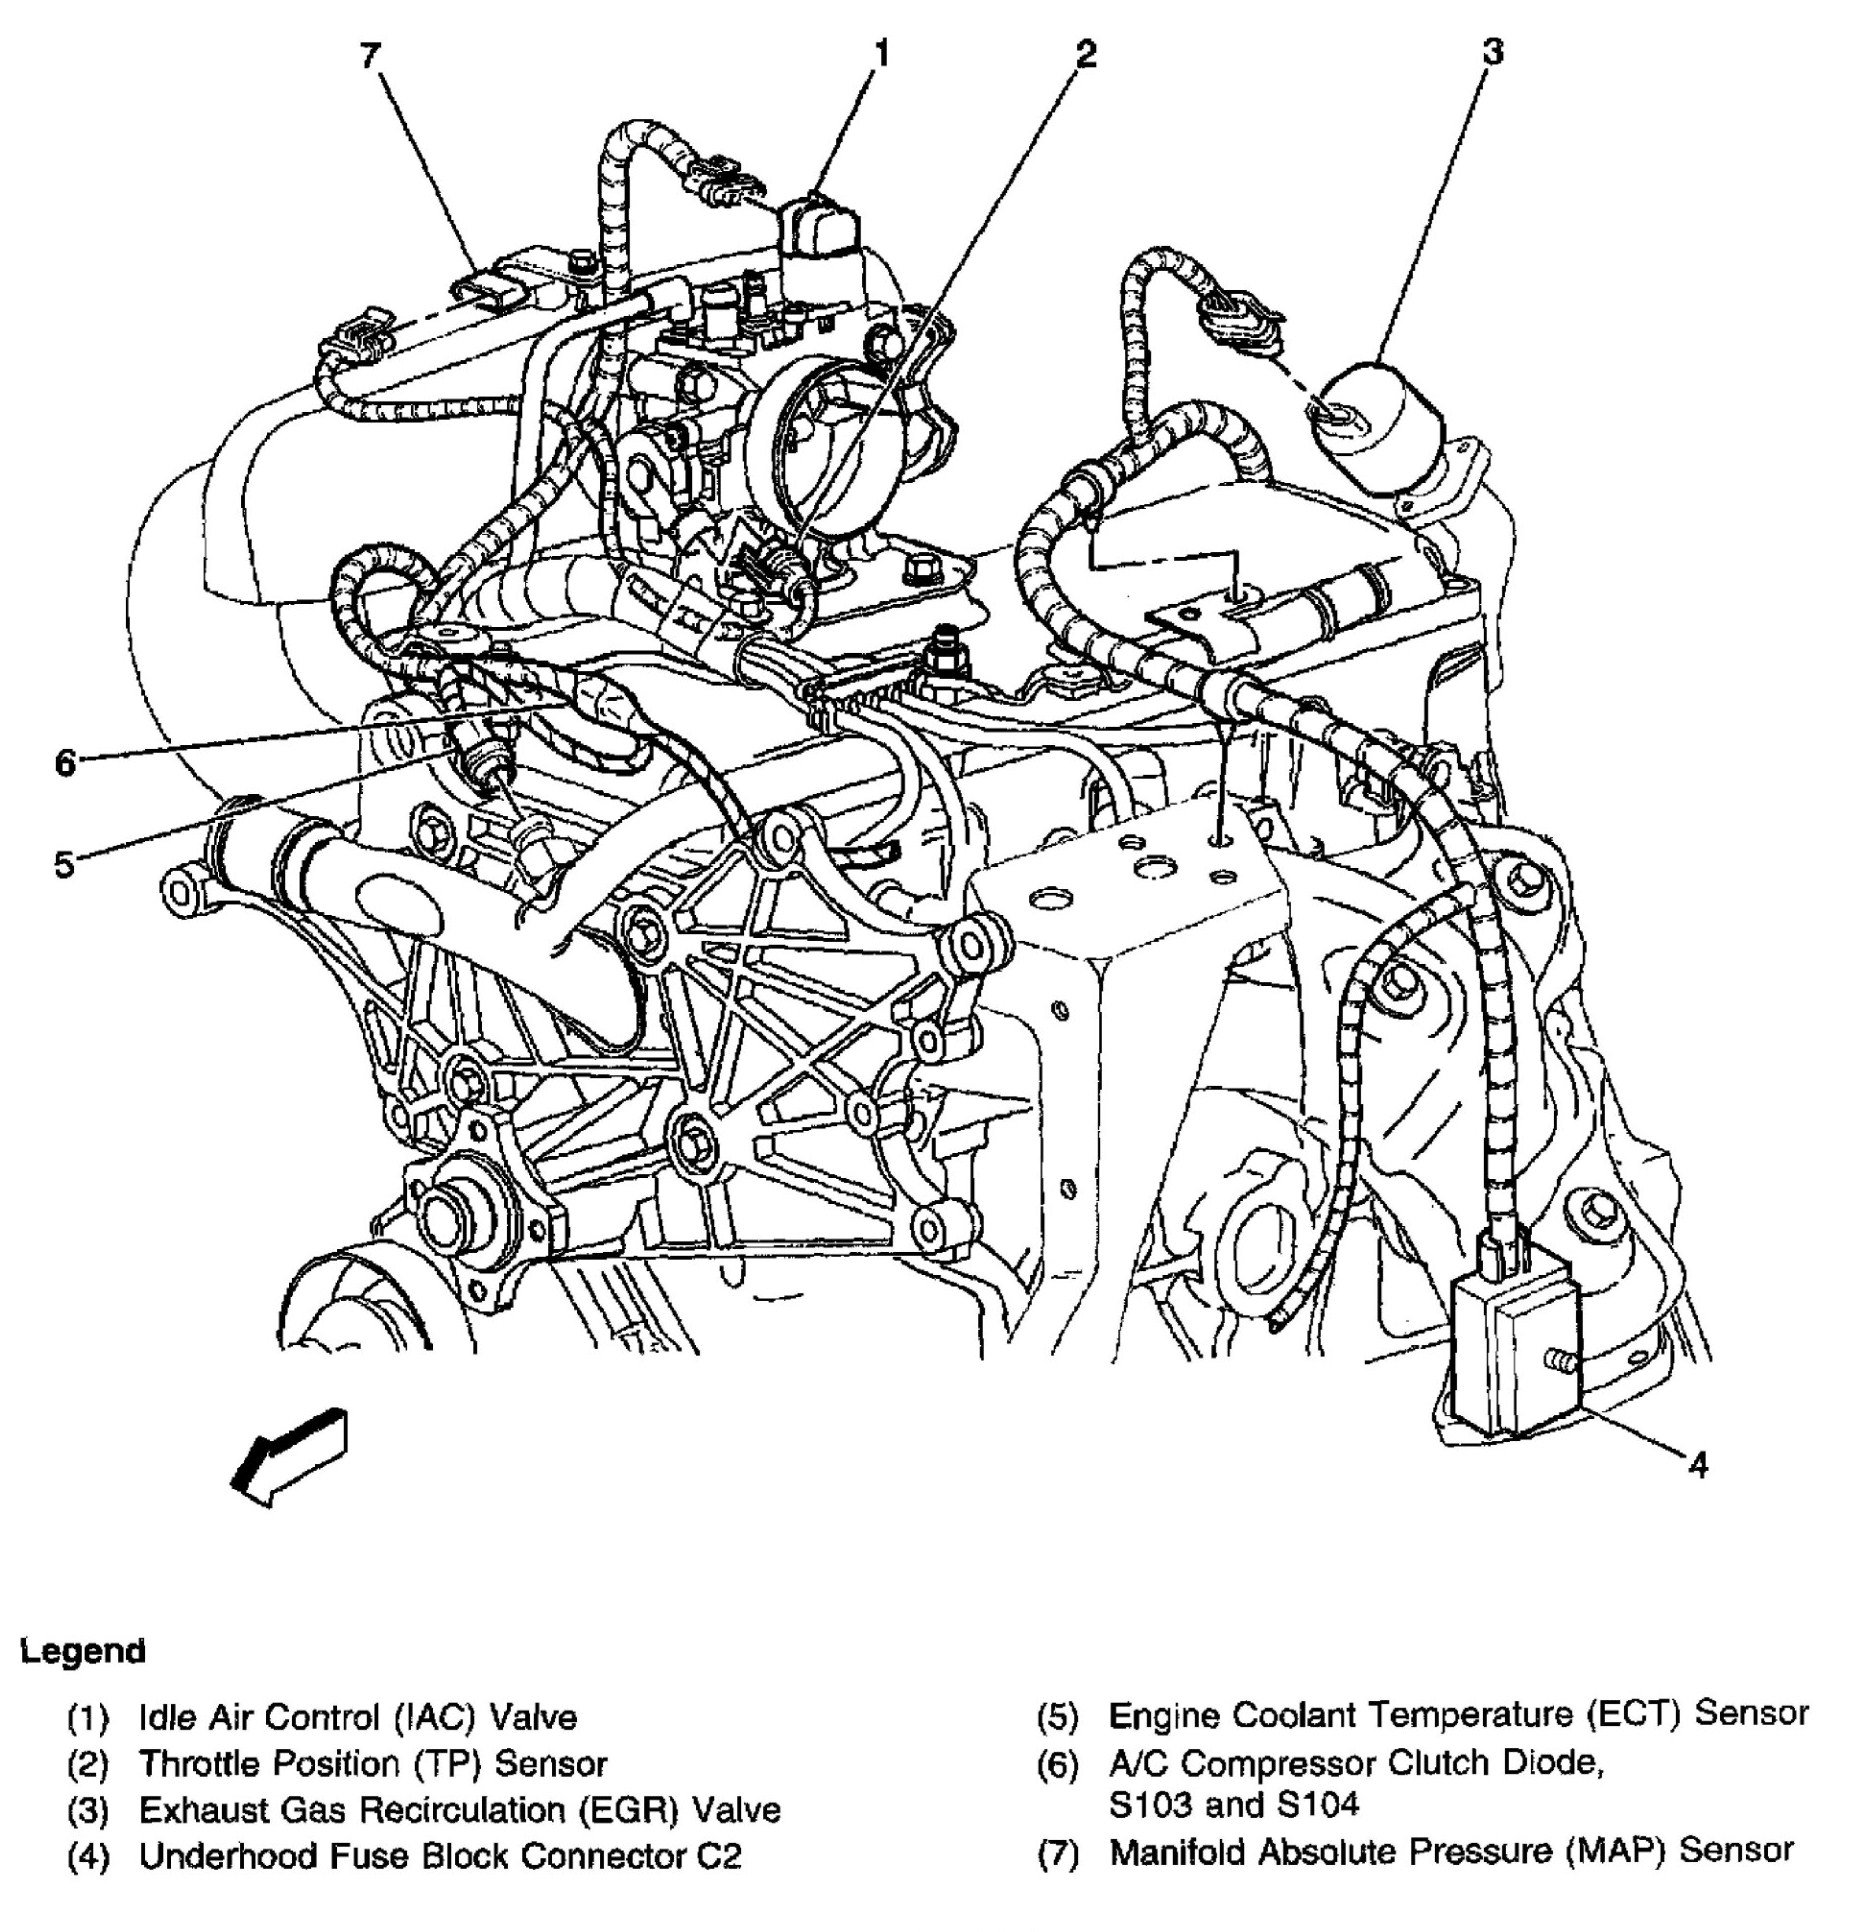 [GJFJ_338]  BH_4064] 1996 Chevy S10 Engine Diagram Download Diagram | 2003 Chevy 2 2l Engine Diagram |  | Ginou Props Favo Mohammedshrine Librar Wiring 101